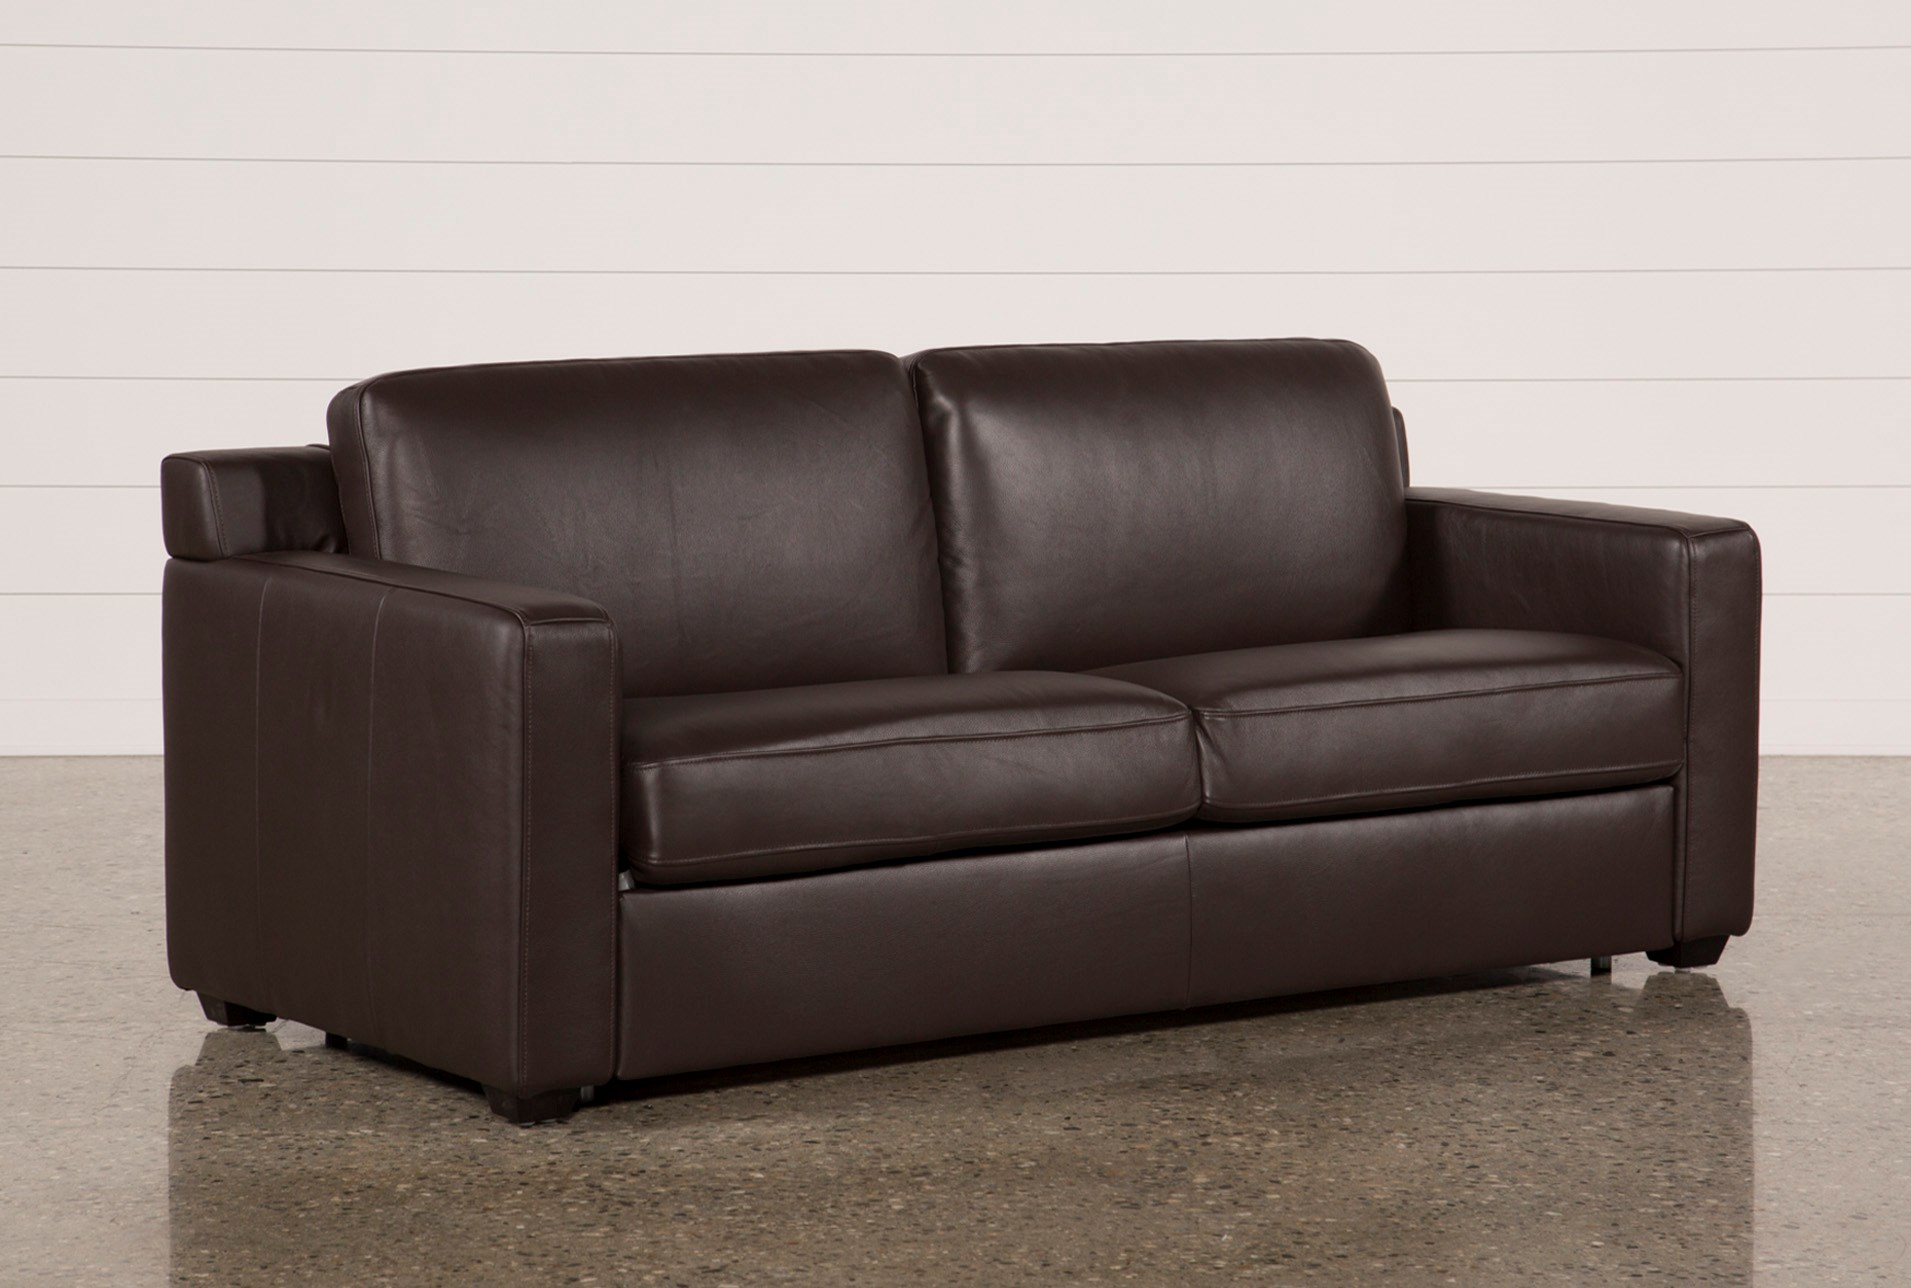 Nolan Leather Brown Sleeper Qty 1 Has Been Successfully Added To Your Cart